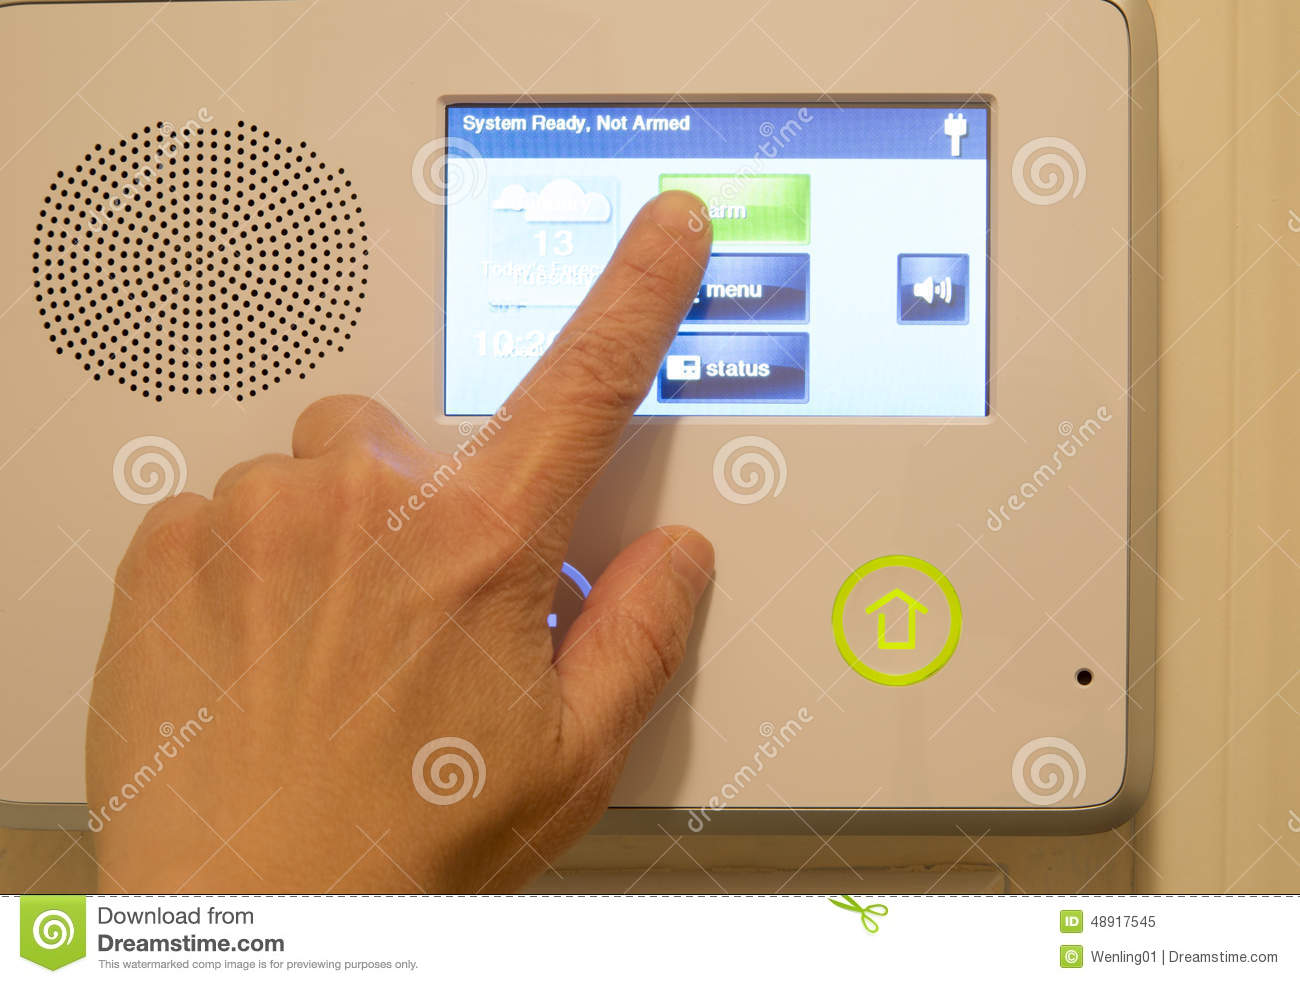 Finger on house security alarm